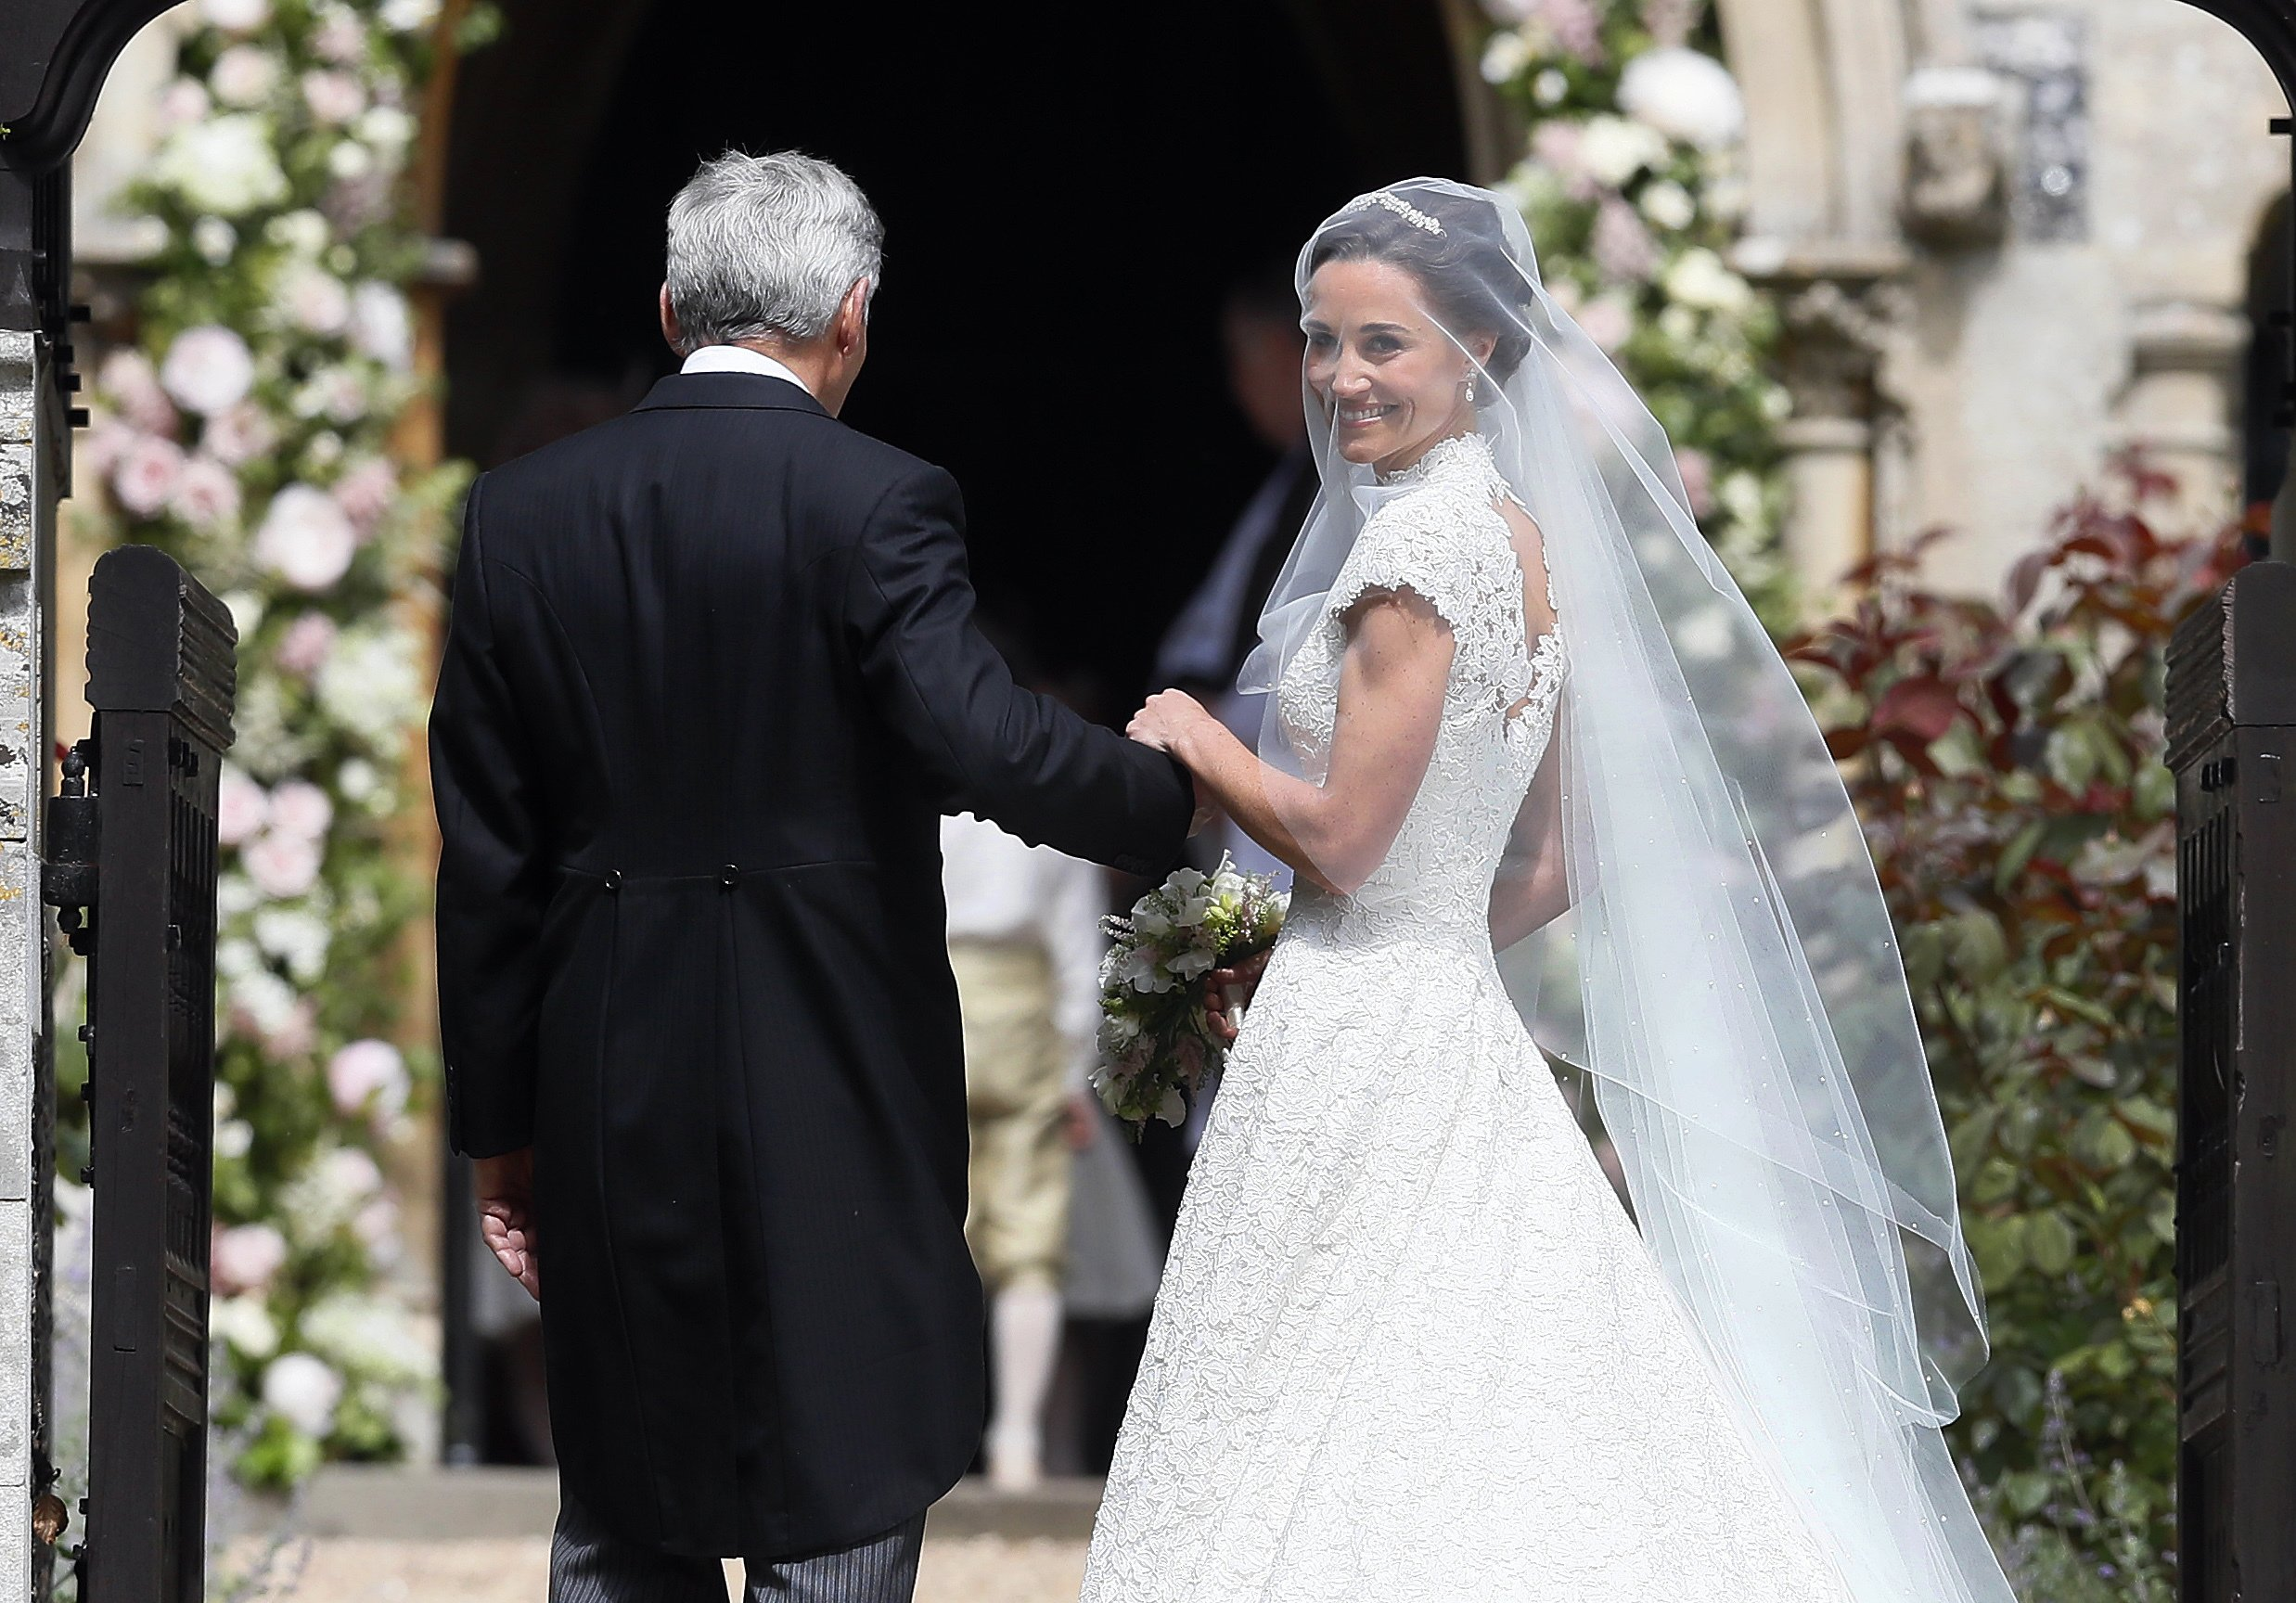 Pippa Middleton arrives with her father Michael Middleton for her wedding to James Matthews at St Mark's Church in Englefield, England, on May 20, 2017.